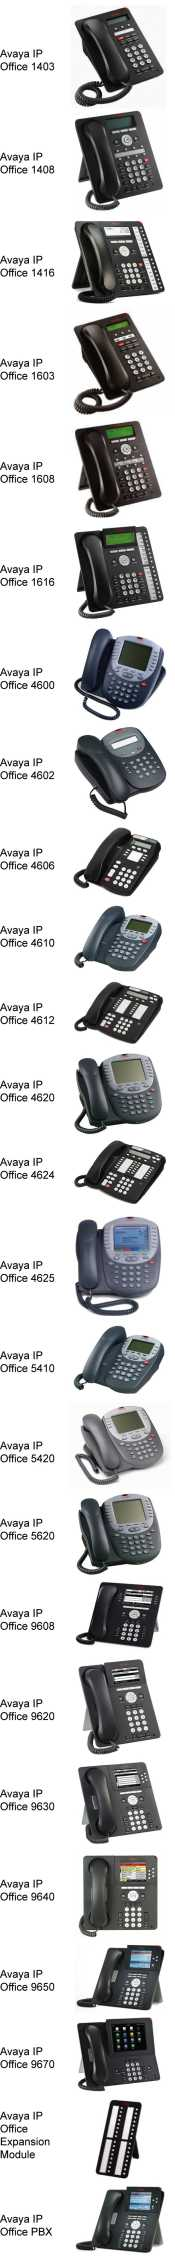 GTS Avaya IP Office Phone Collection